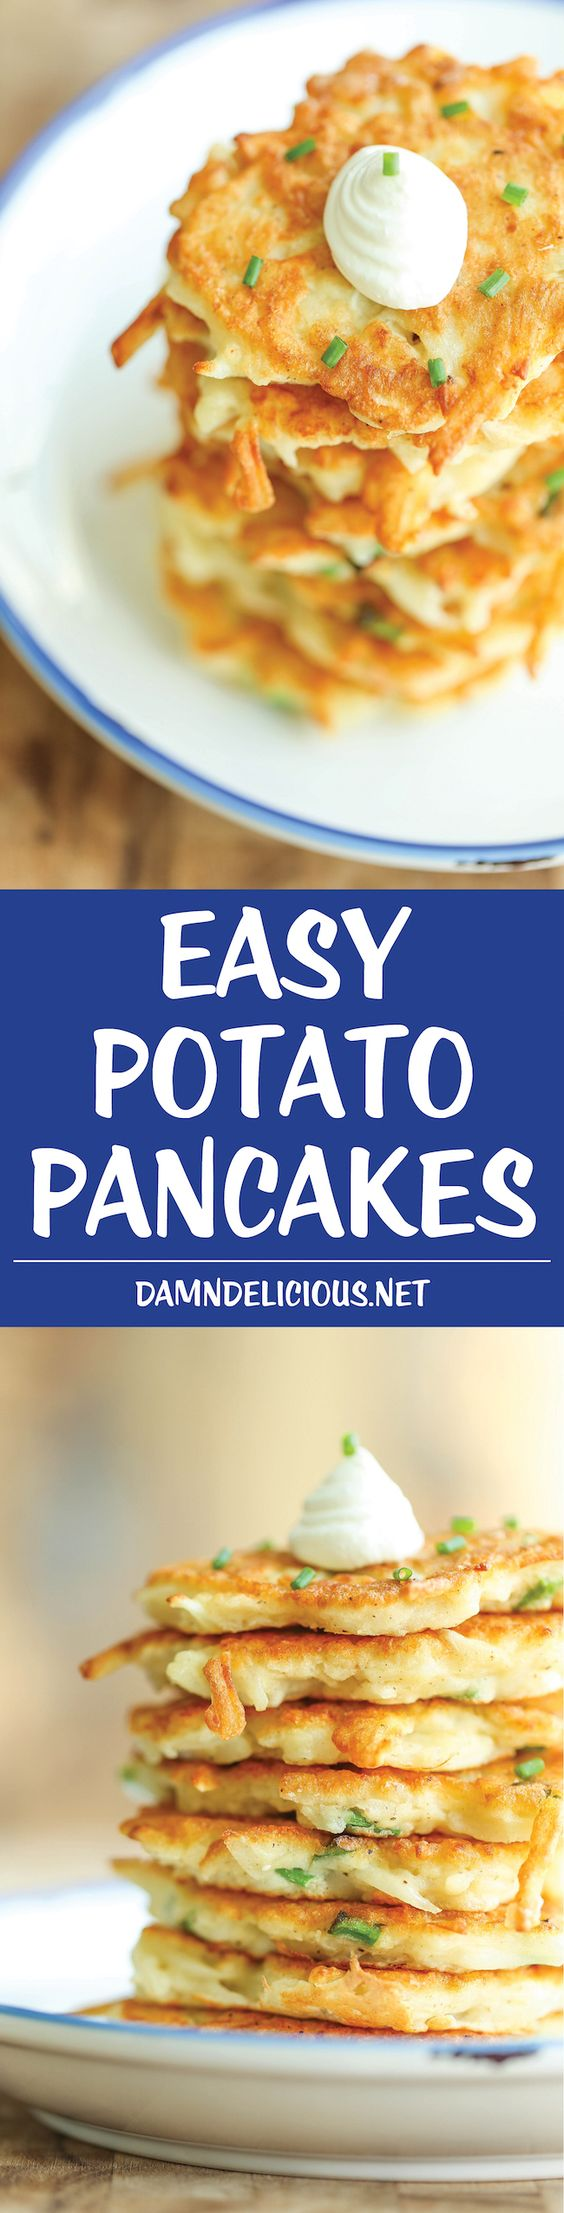 Easy Potato Pancakes Recipe via Damn Delicious - Wonderfully crisp, tender, and just melt-in-your mouth amazing. Can be served as an appetizer, side dish or even a light main dish!